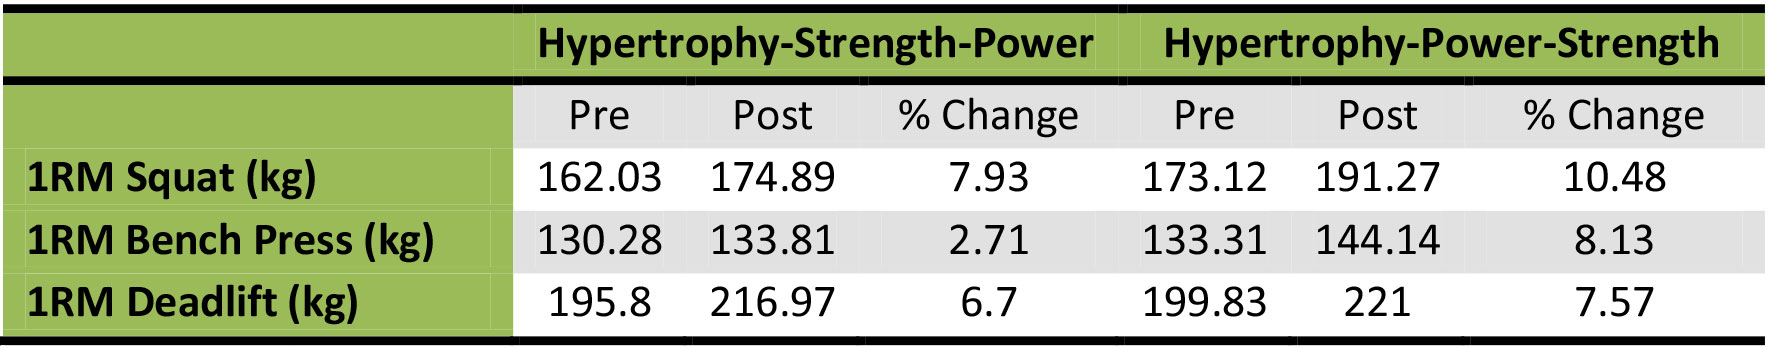 effect of varying DUP on 1RM gains in powerlifters